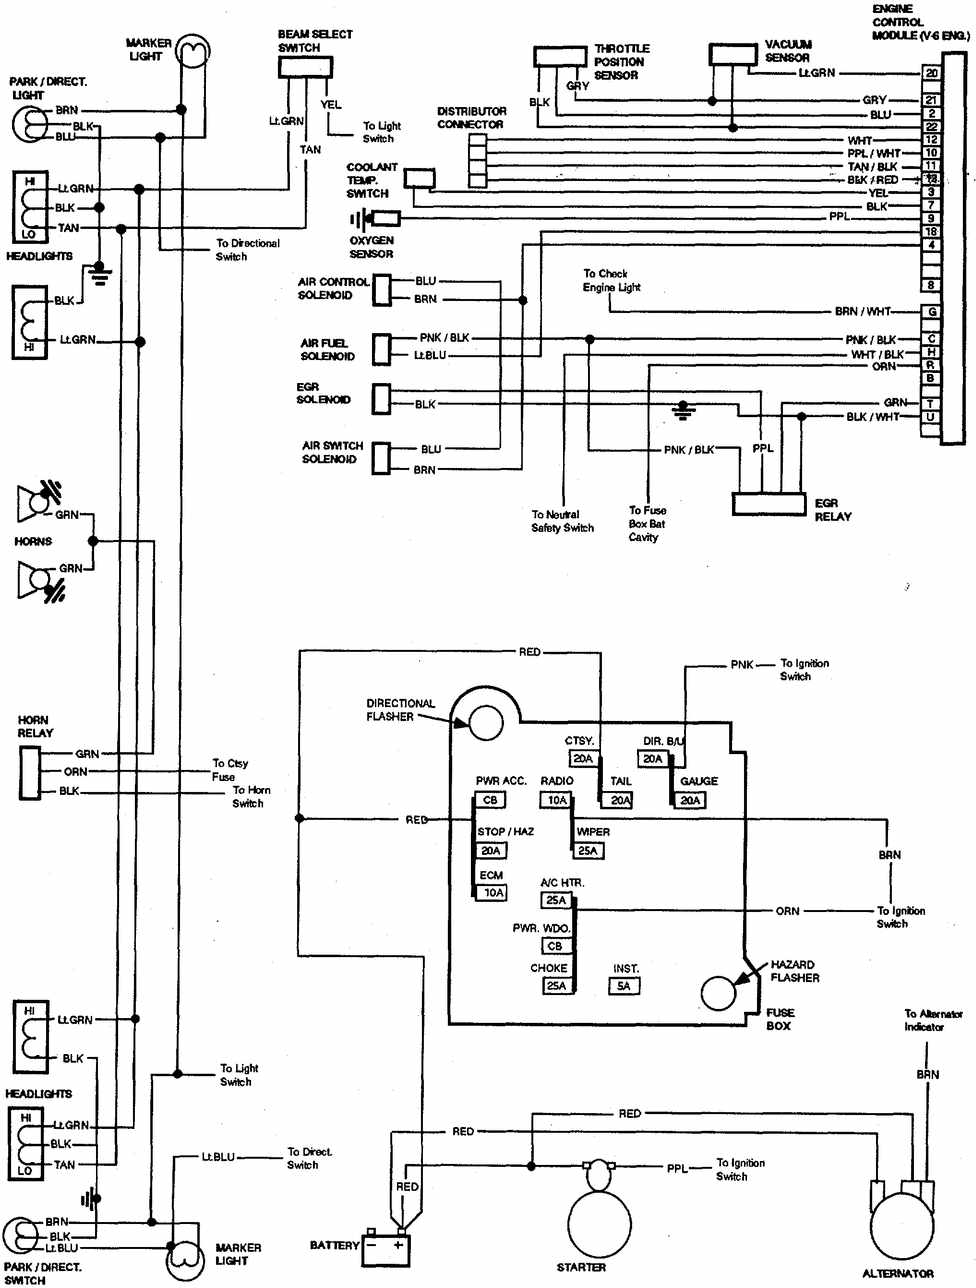 1985 chevy 305 vacuum diagram for pinterest